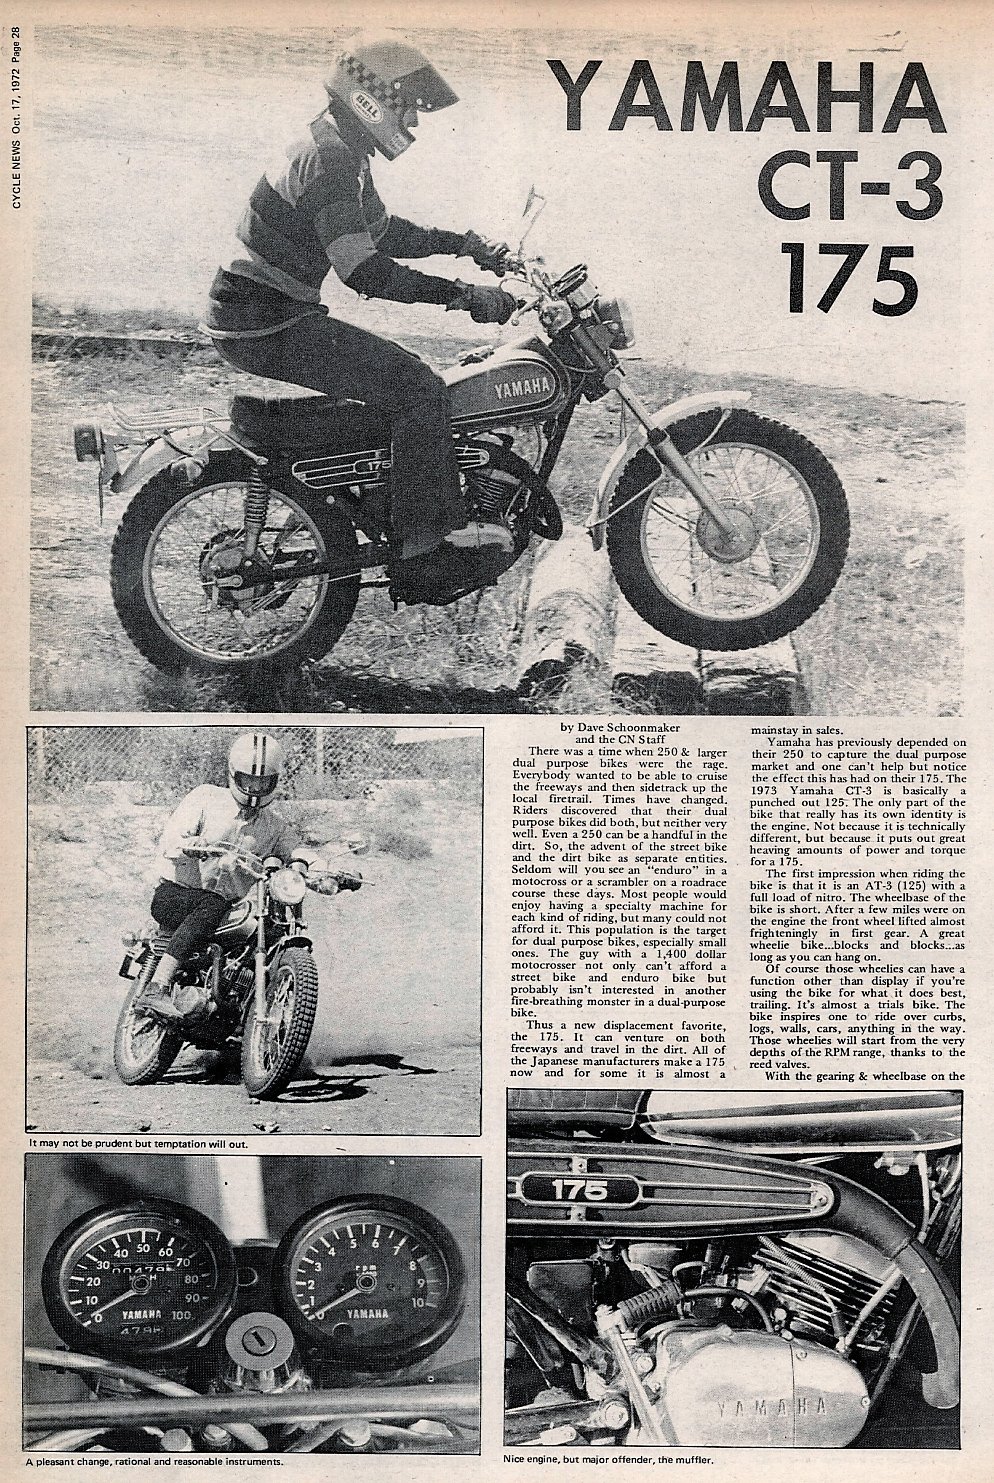 1972 Yamaha CT-3 175 road test.1.jpg